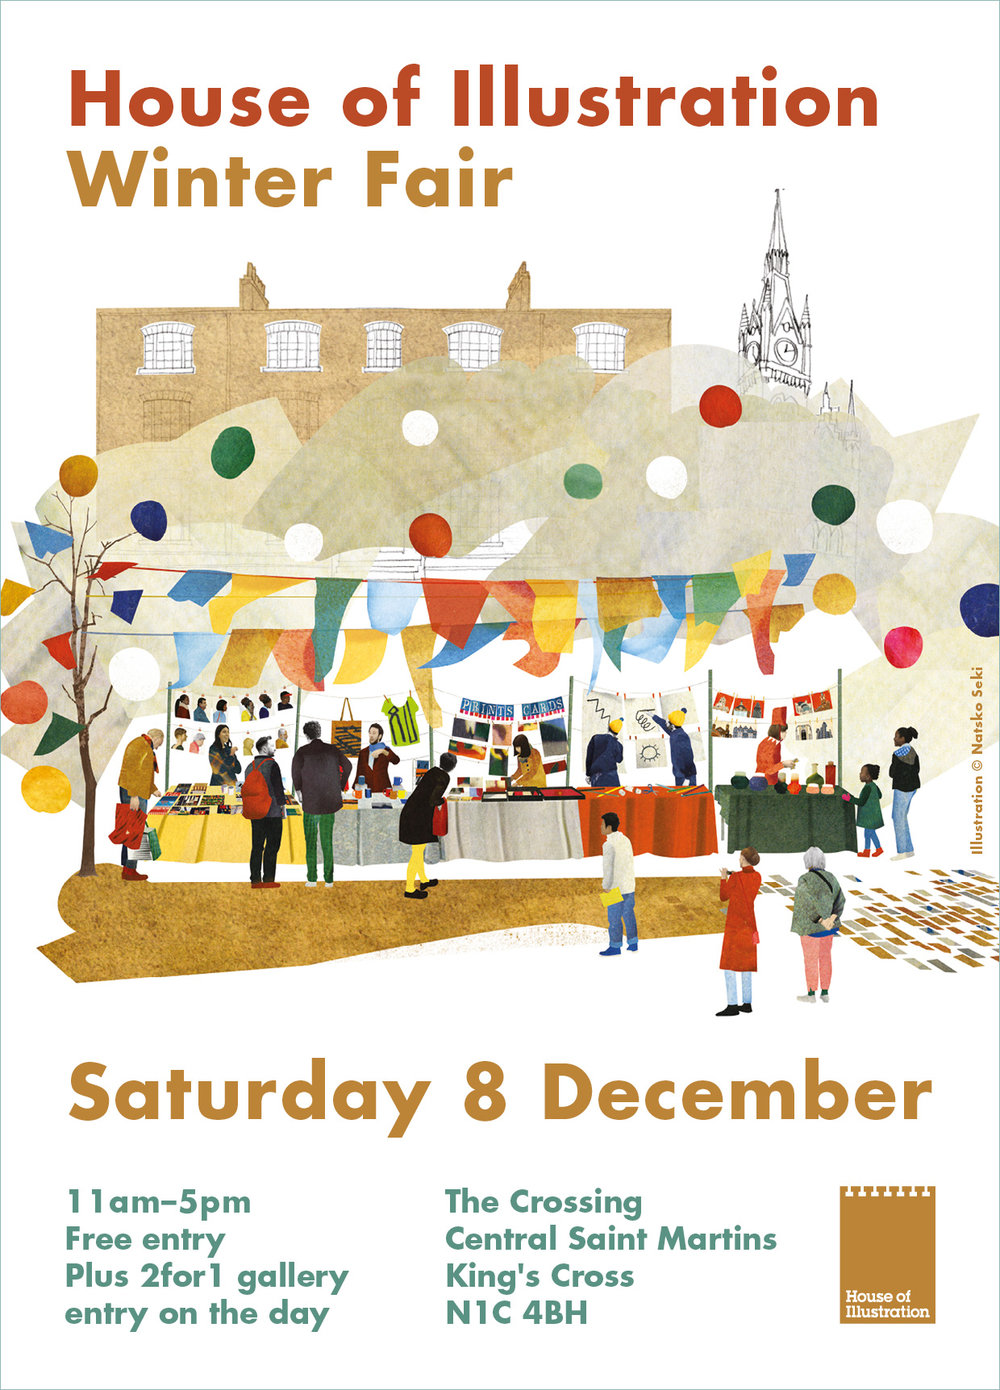 House-of-Illustration-Winter-Fair-e-flyer.jpg